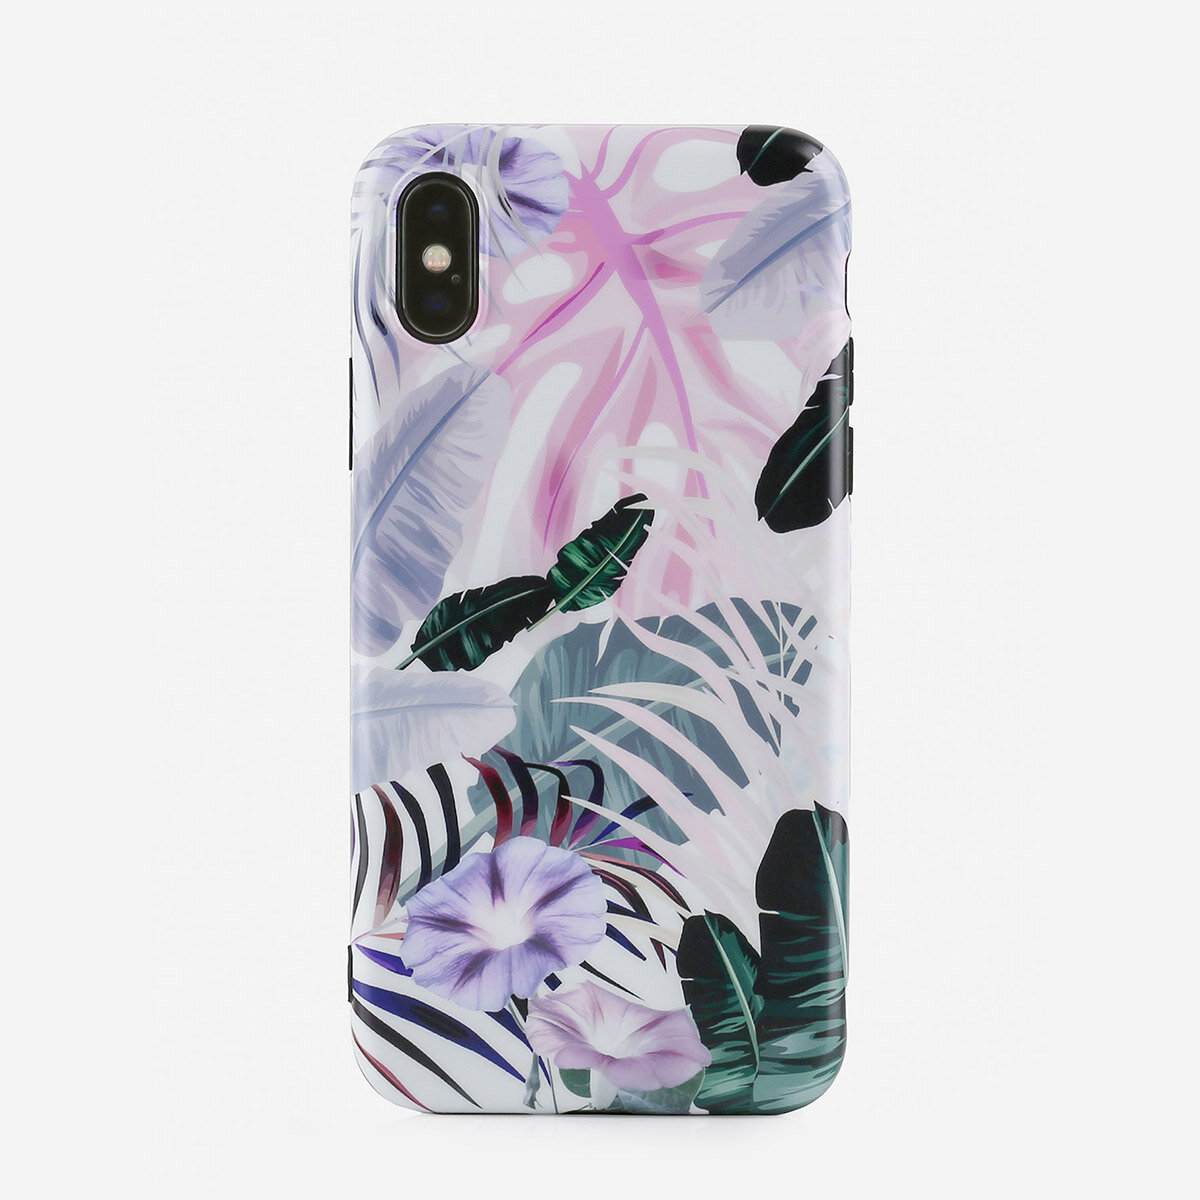 Unisex Woman Tropical Fruit Leaf Pattern TPU Soft Shell Phone Case For iPhone